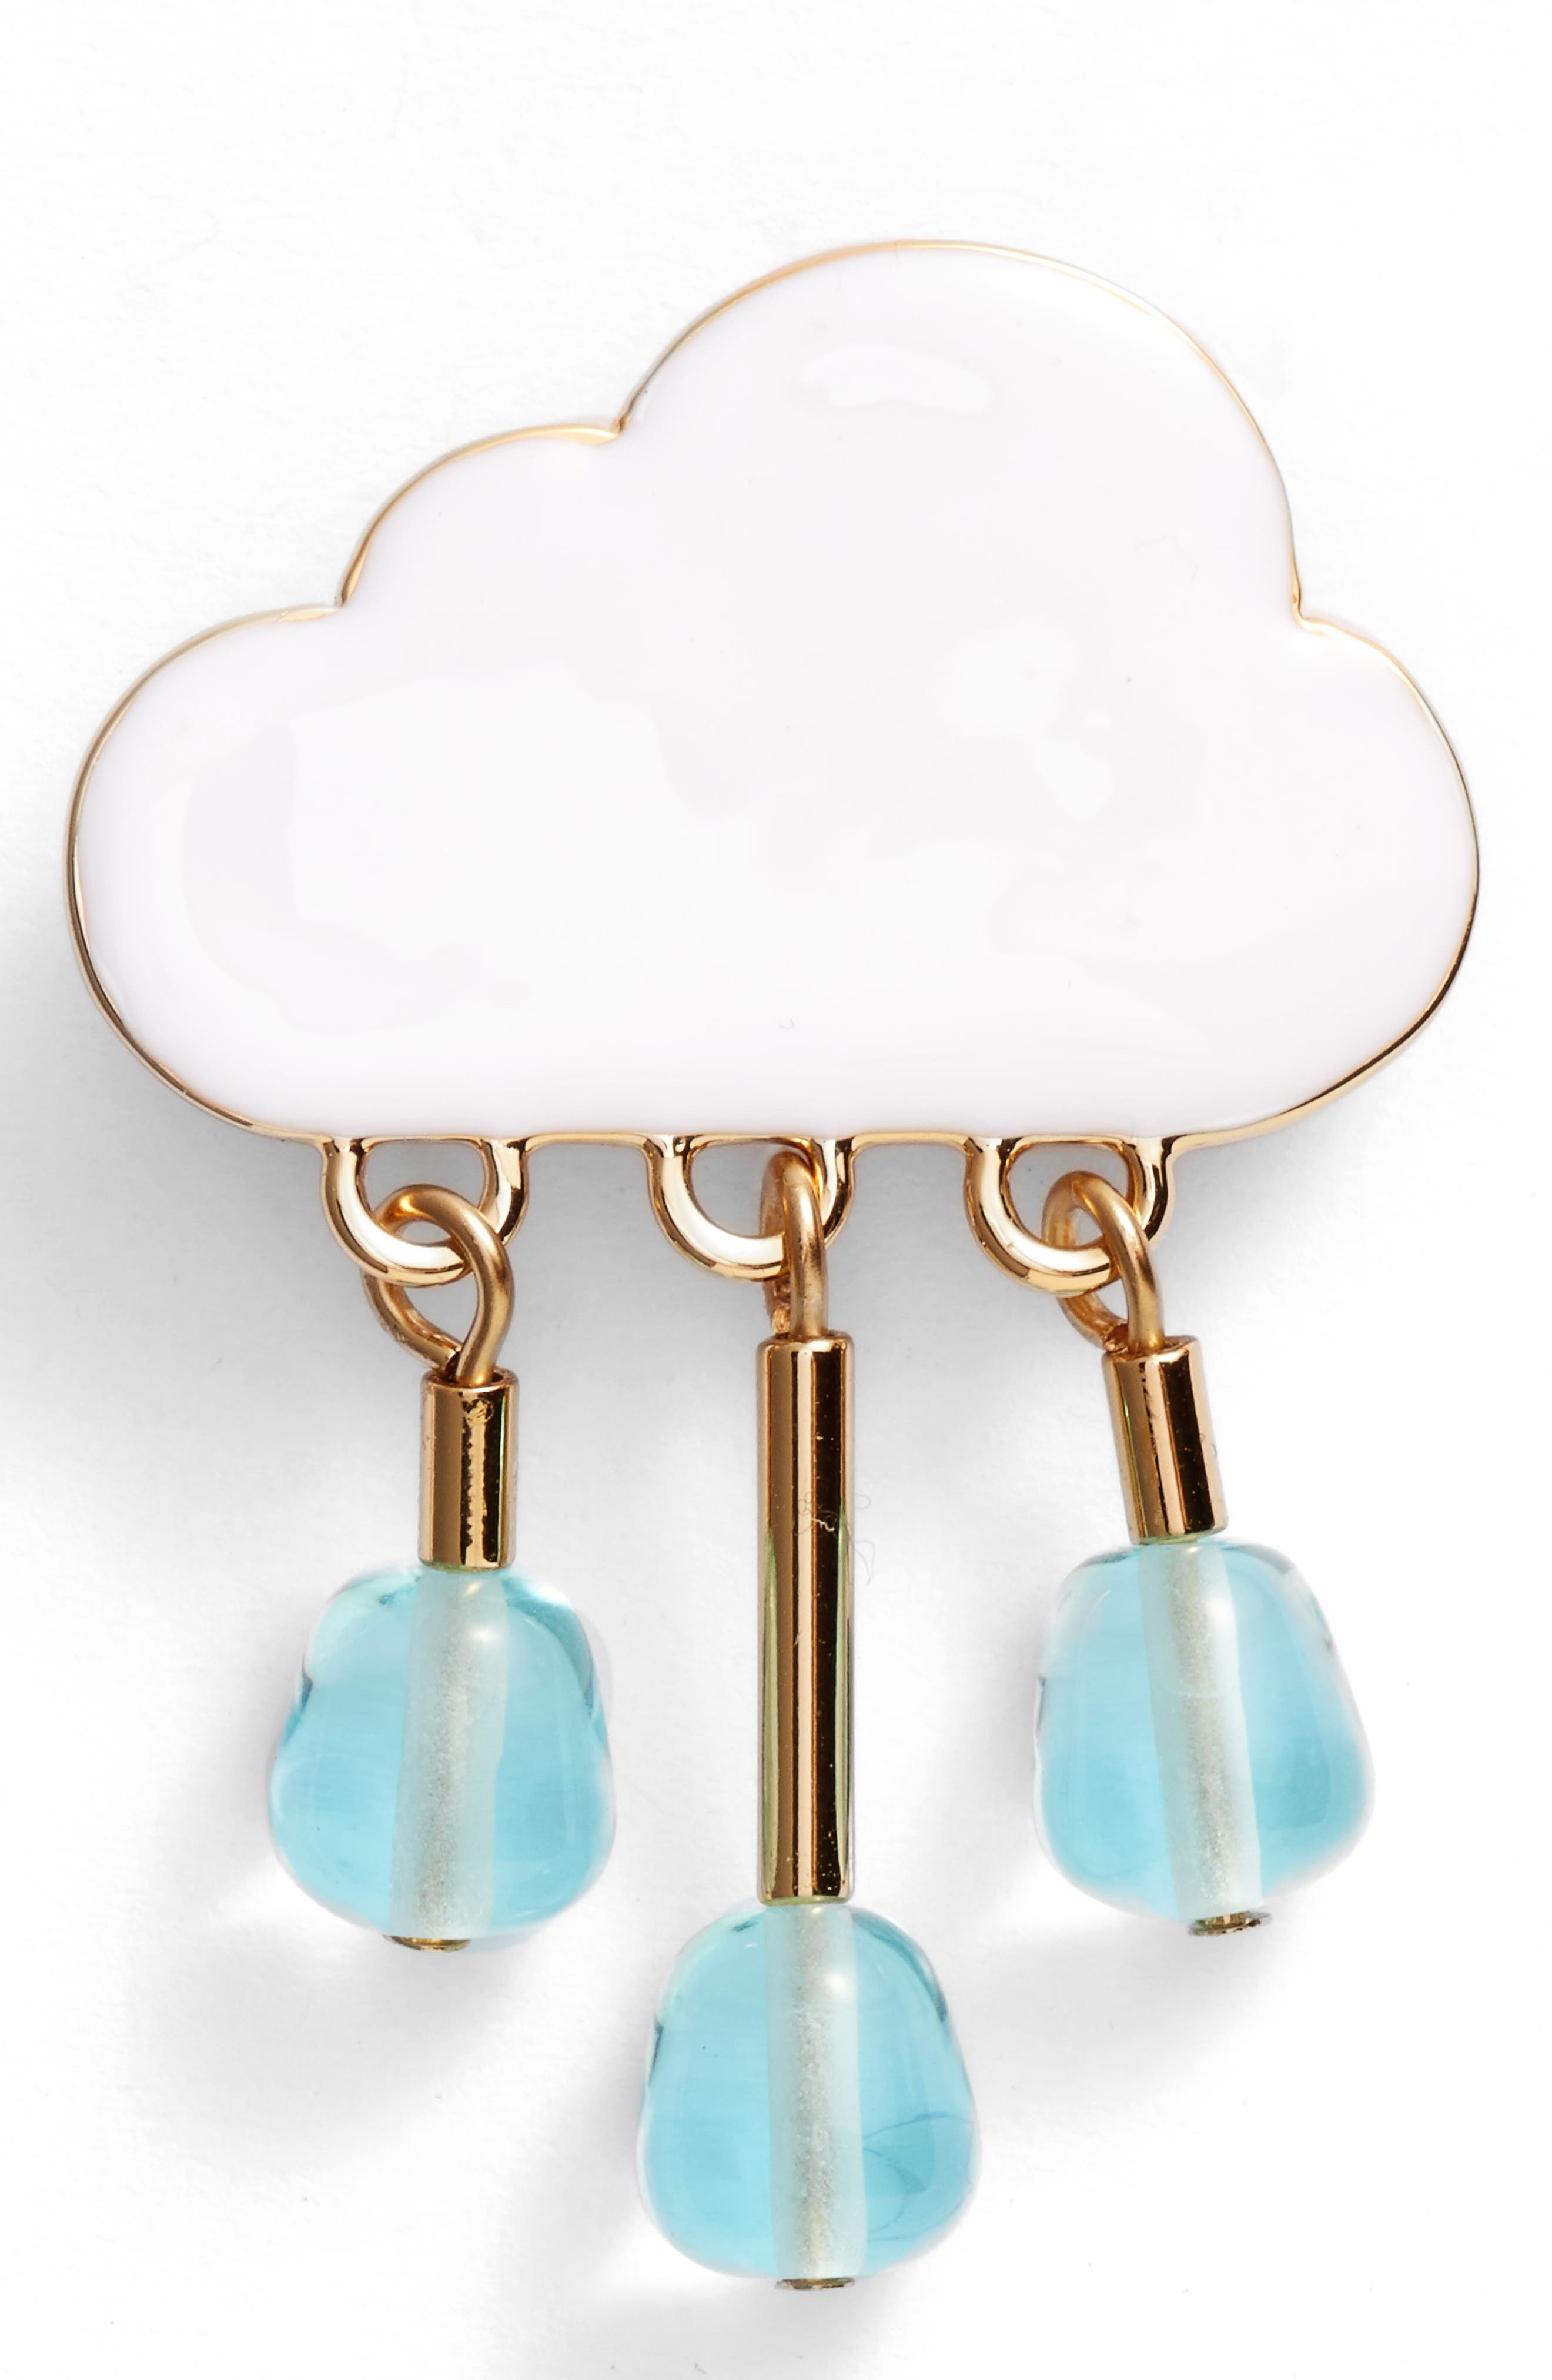 Chance of Rain Pin,                         Main,                         color, White/ Gold